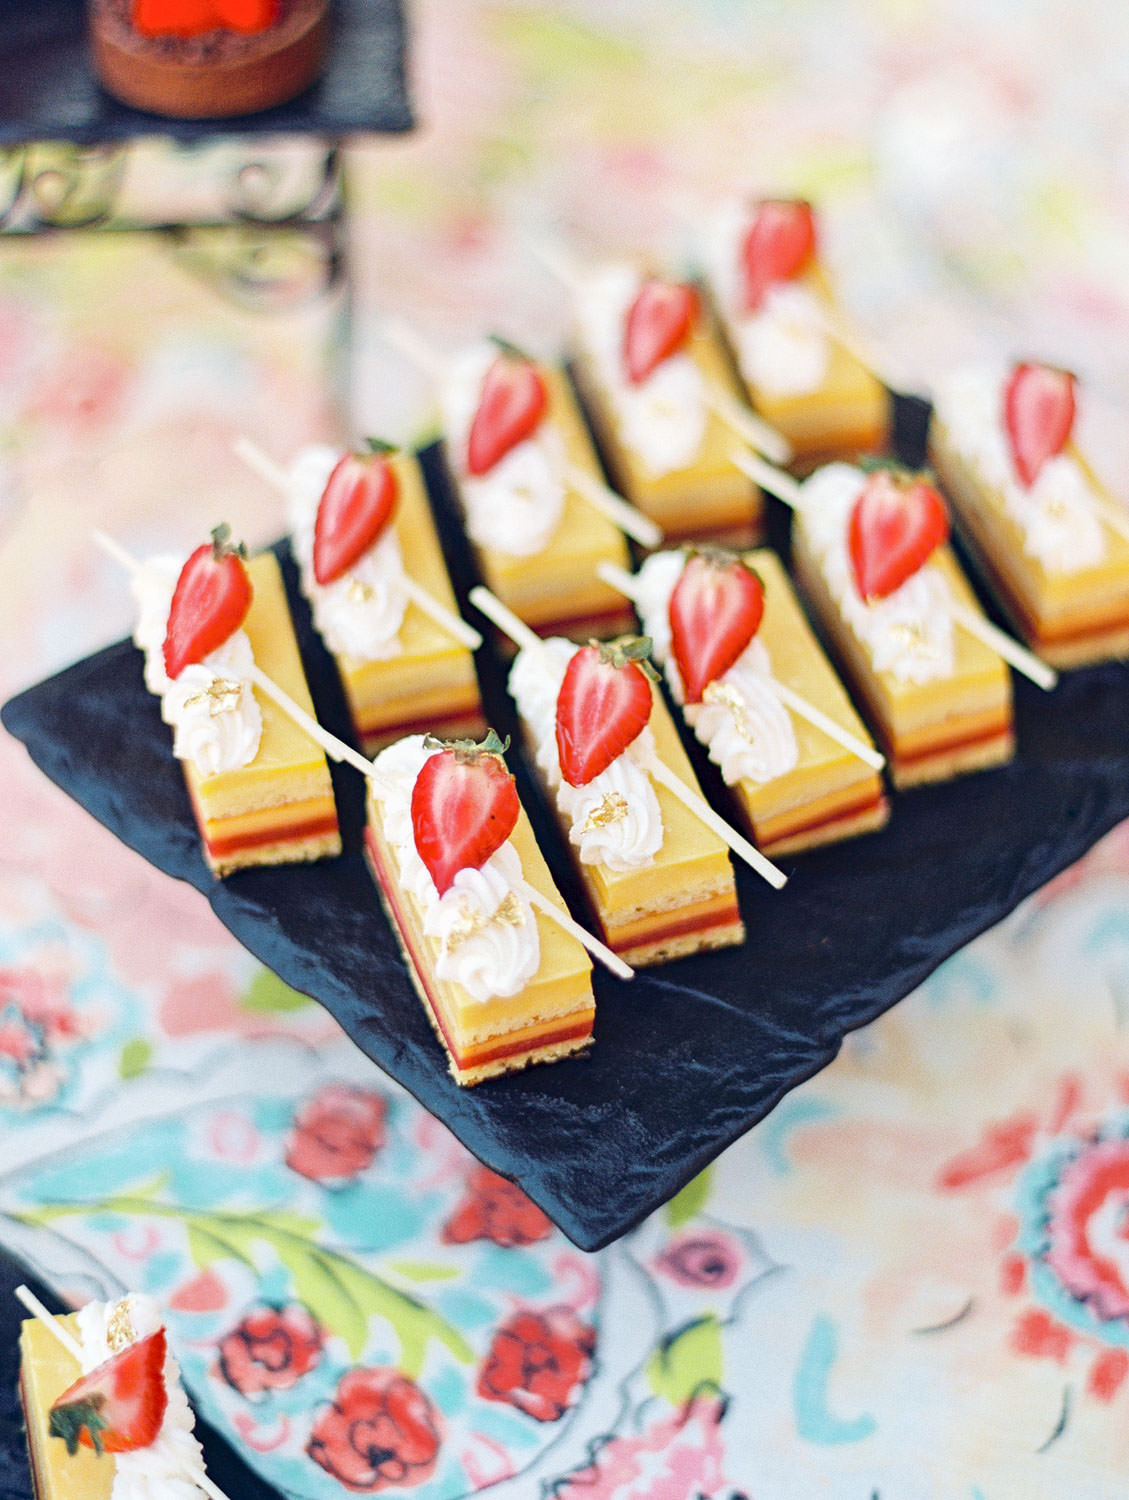 Desserts at Manchester Terrace at Wedding at the Fairmont Grand Del Mar, Cavin Elizabeth Photography